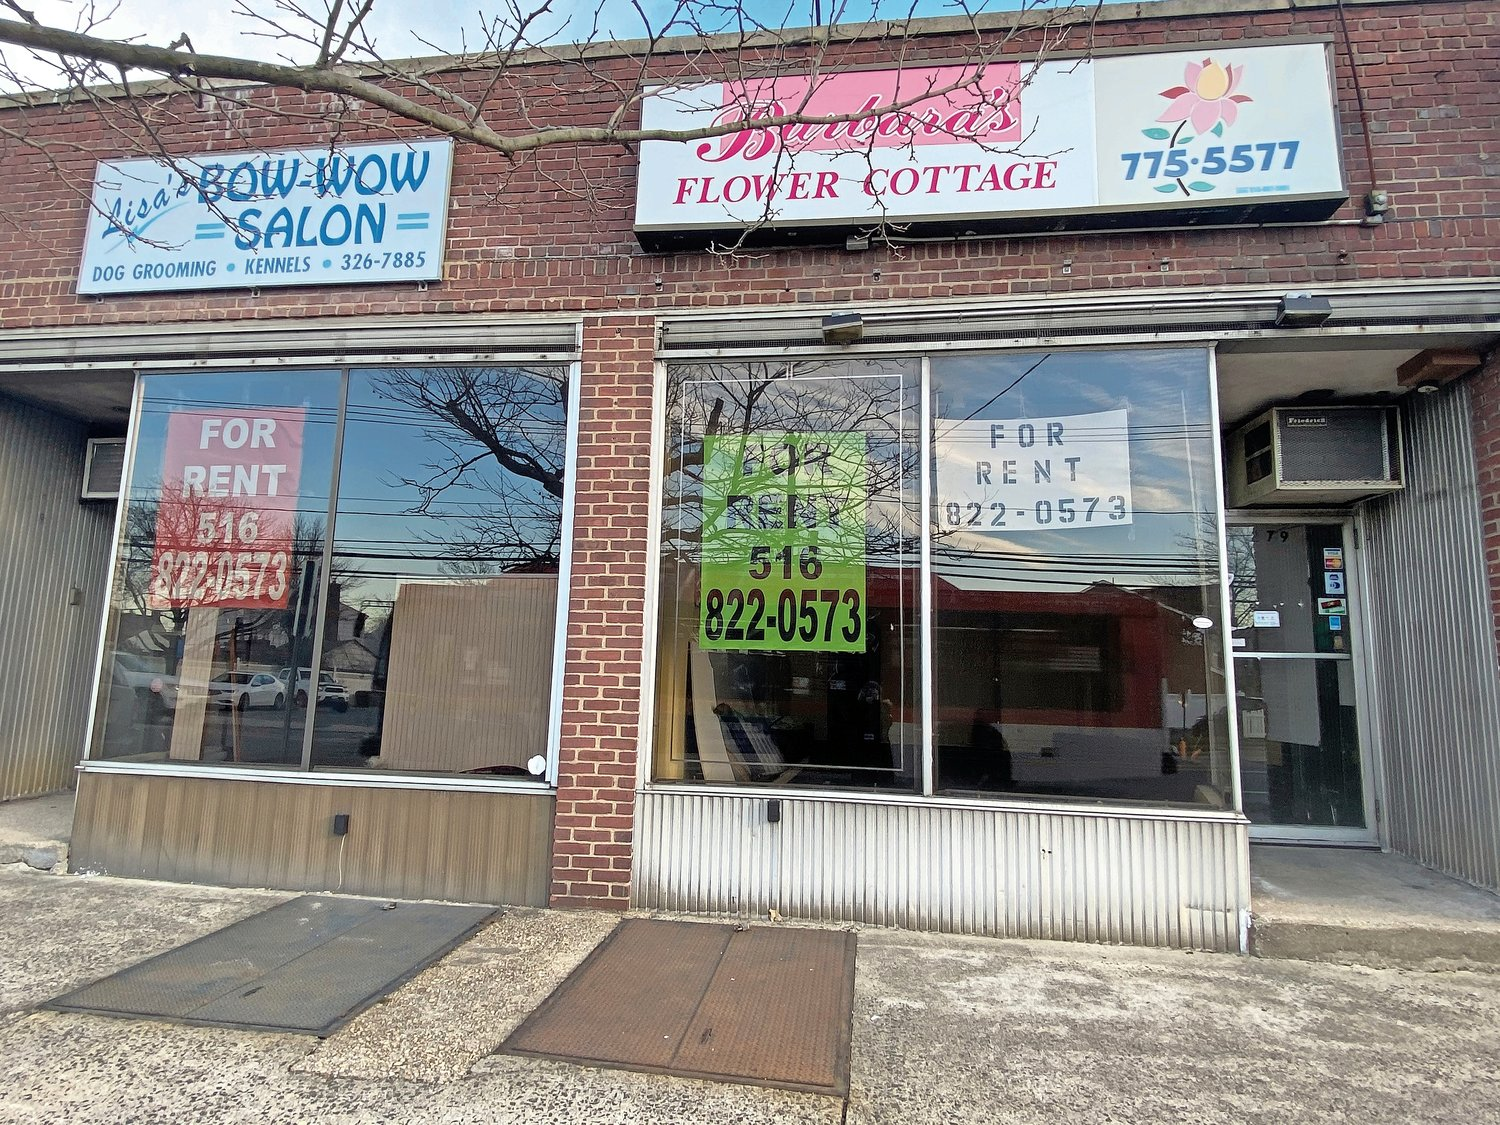 There are many empty storefronts in Franklin Square and Elmont.